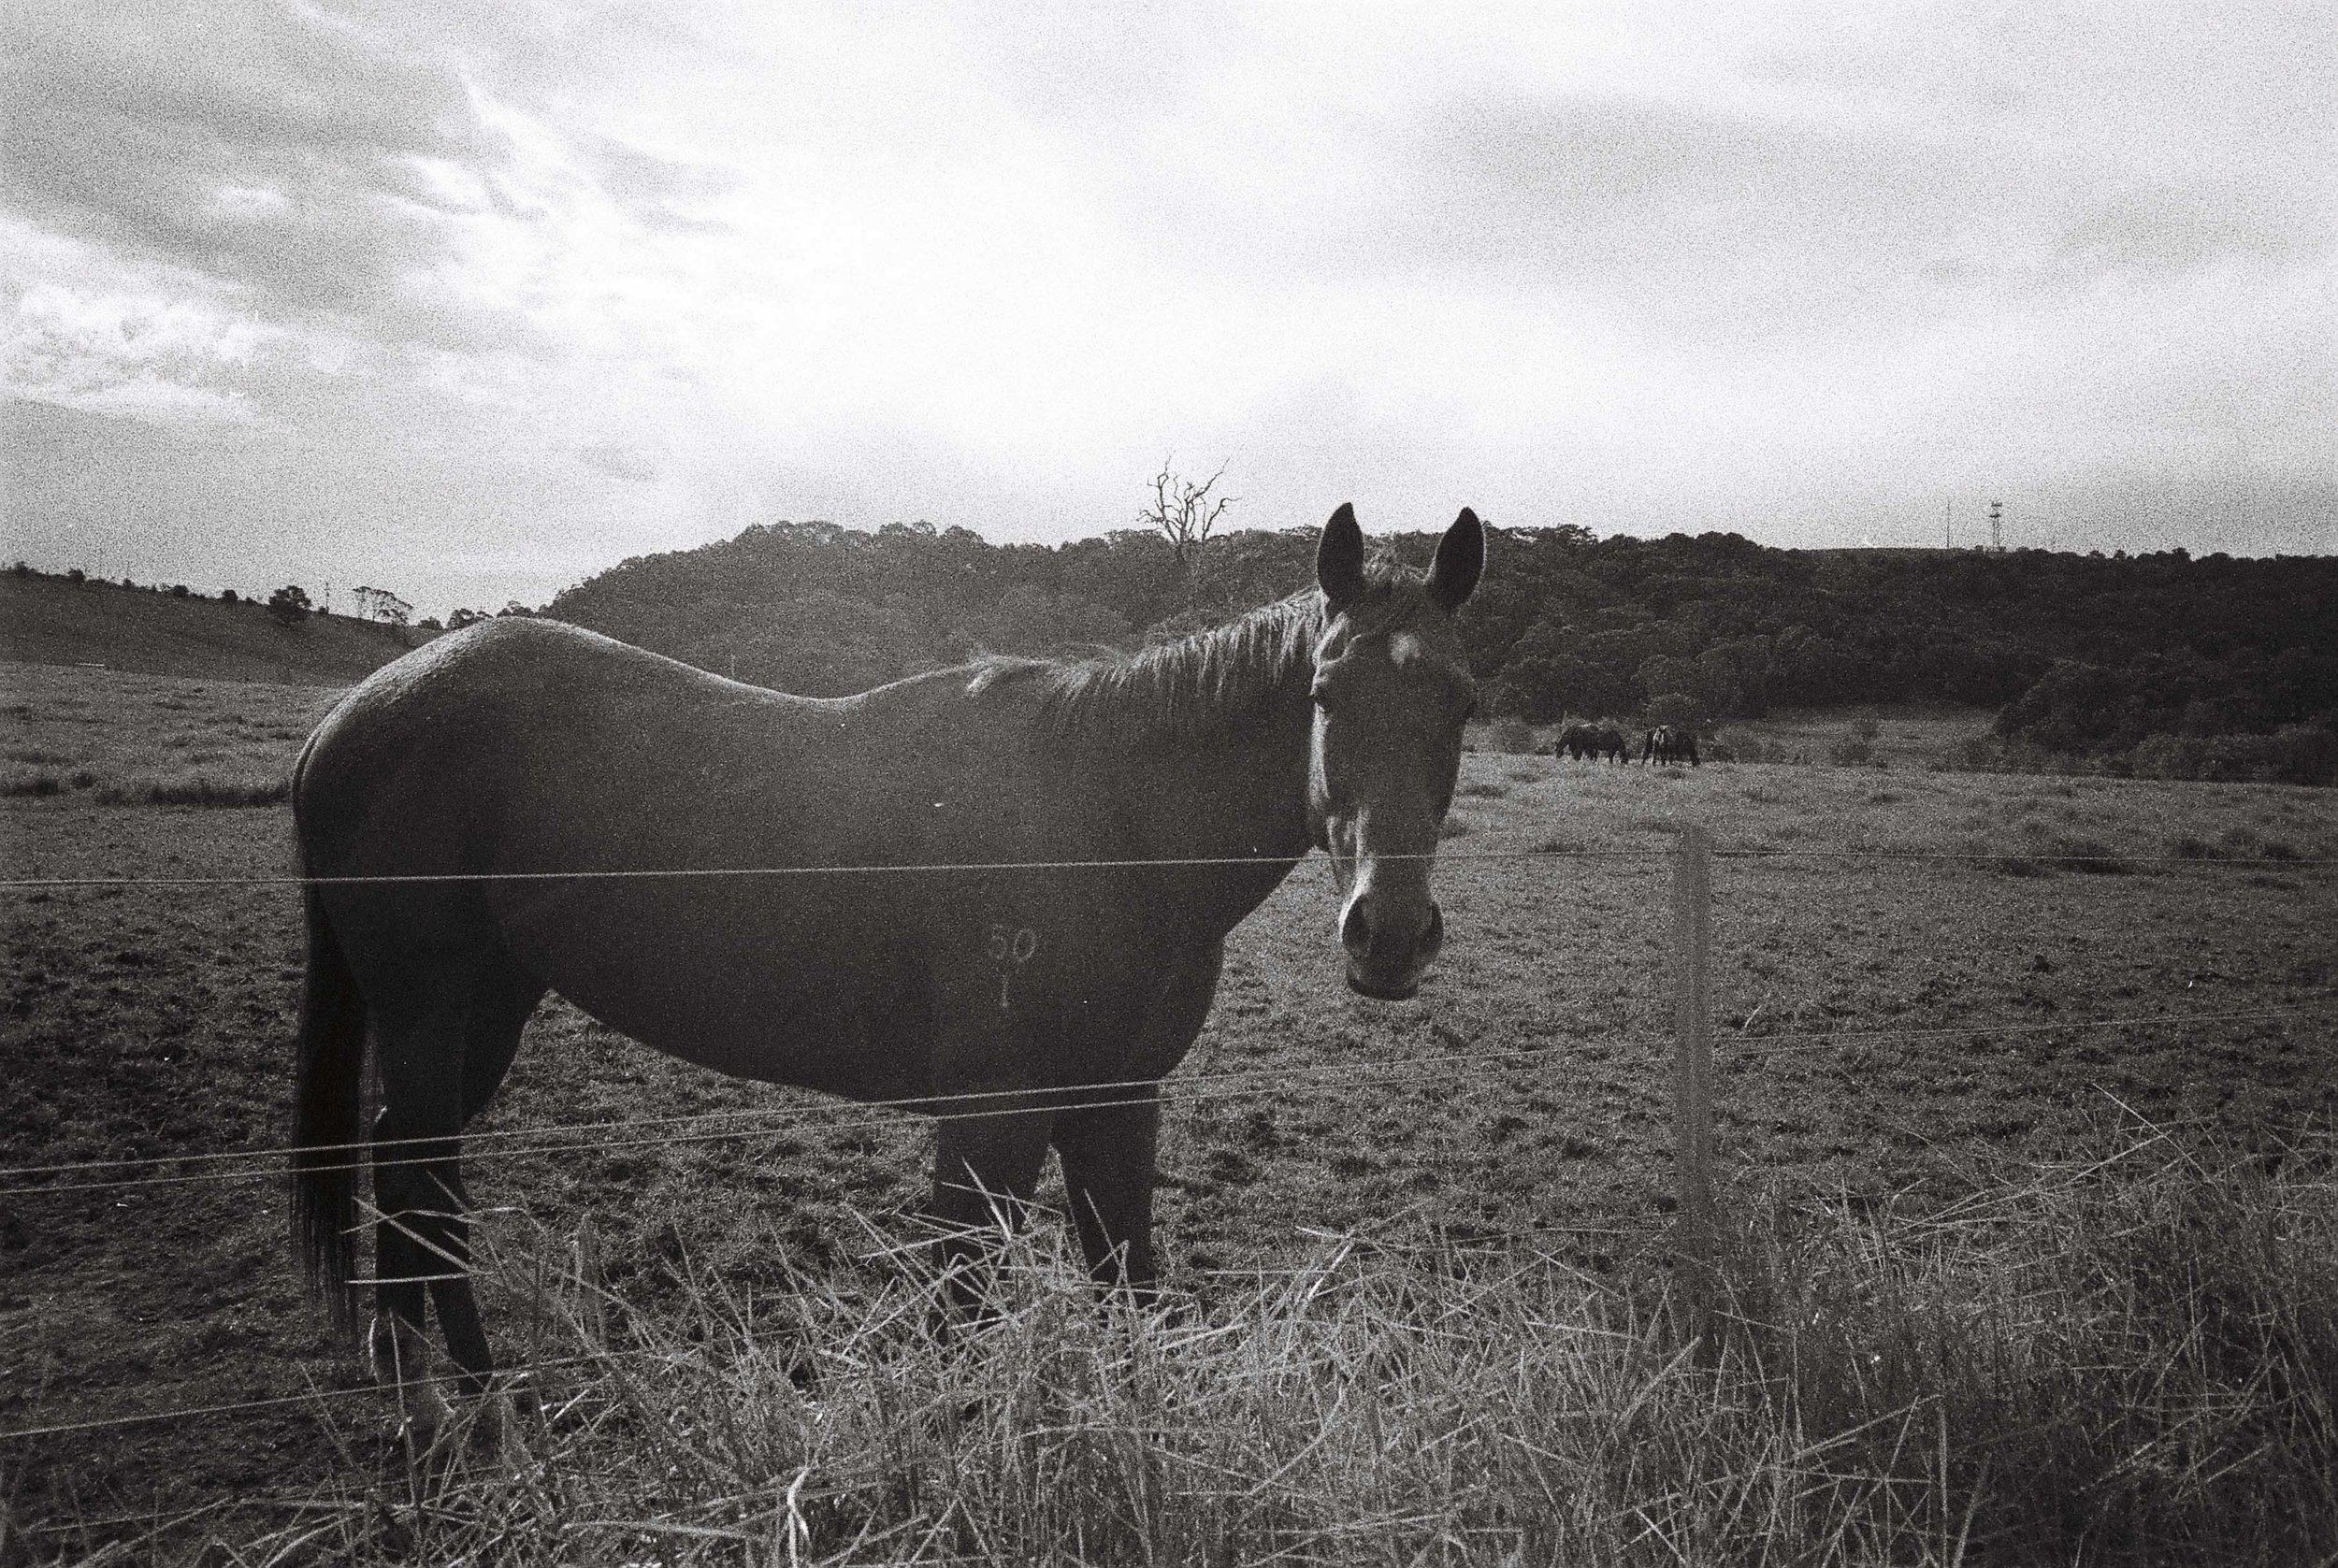 Agar's Lane Horse, taken by me on RPX 400, pushed to 800.